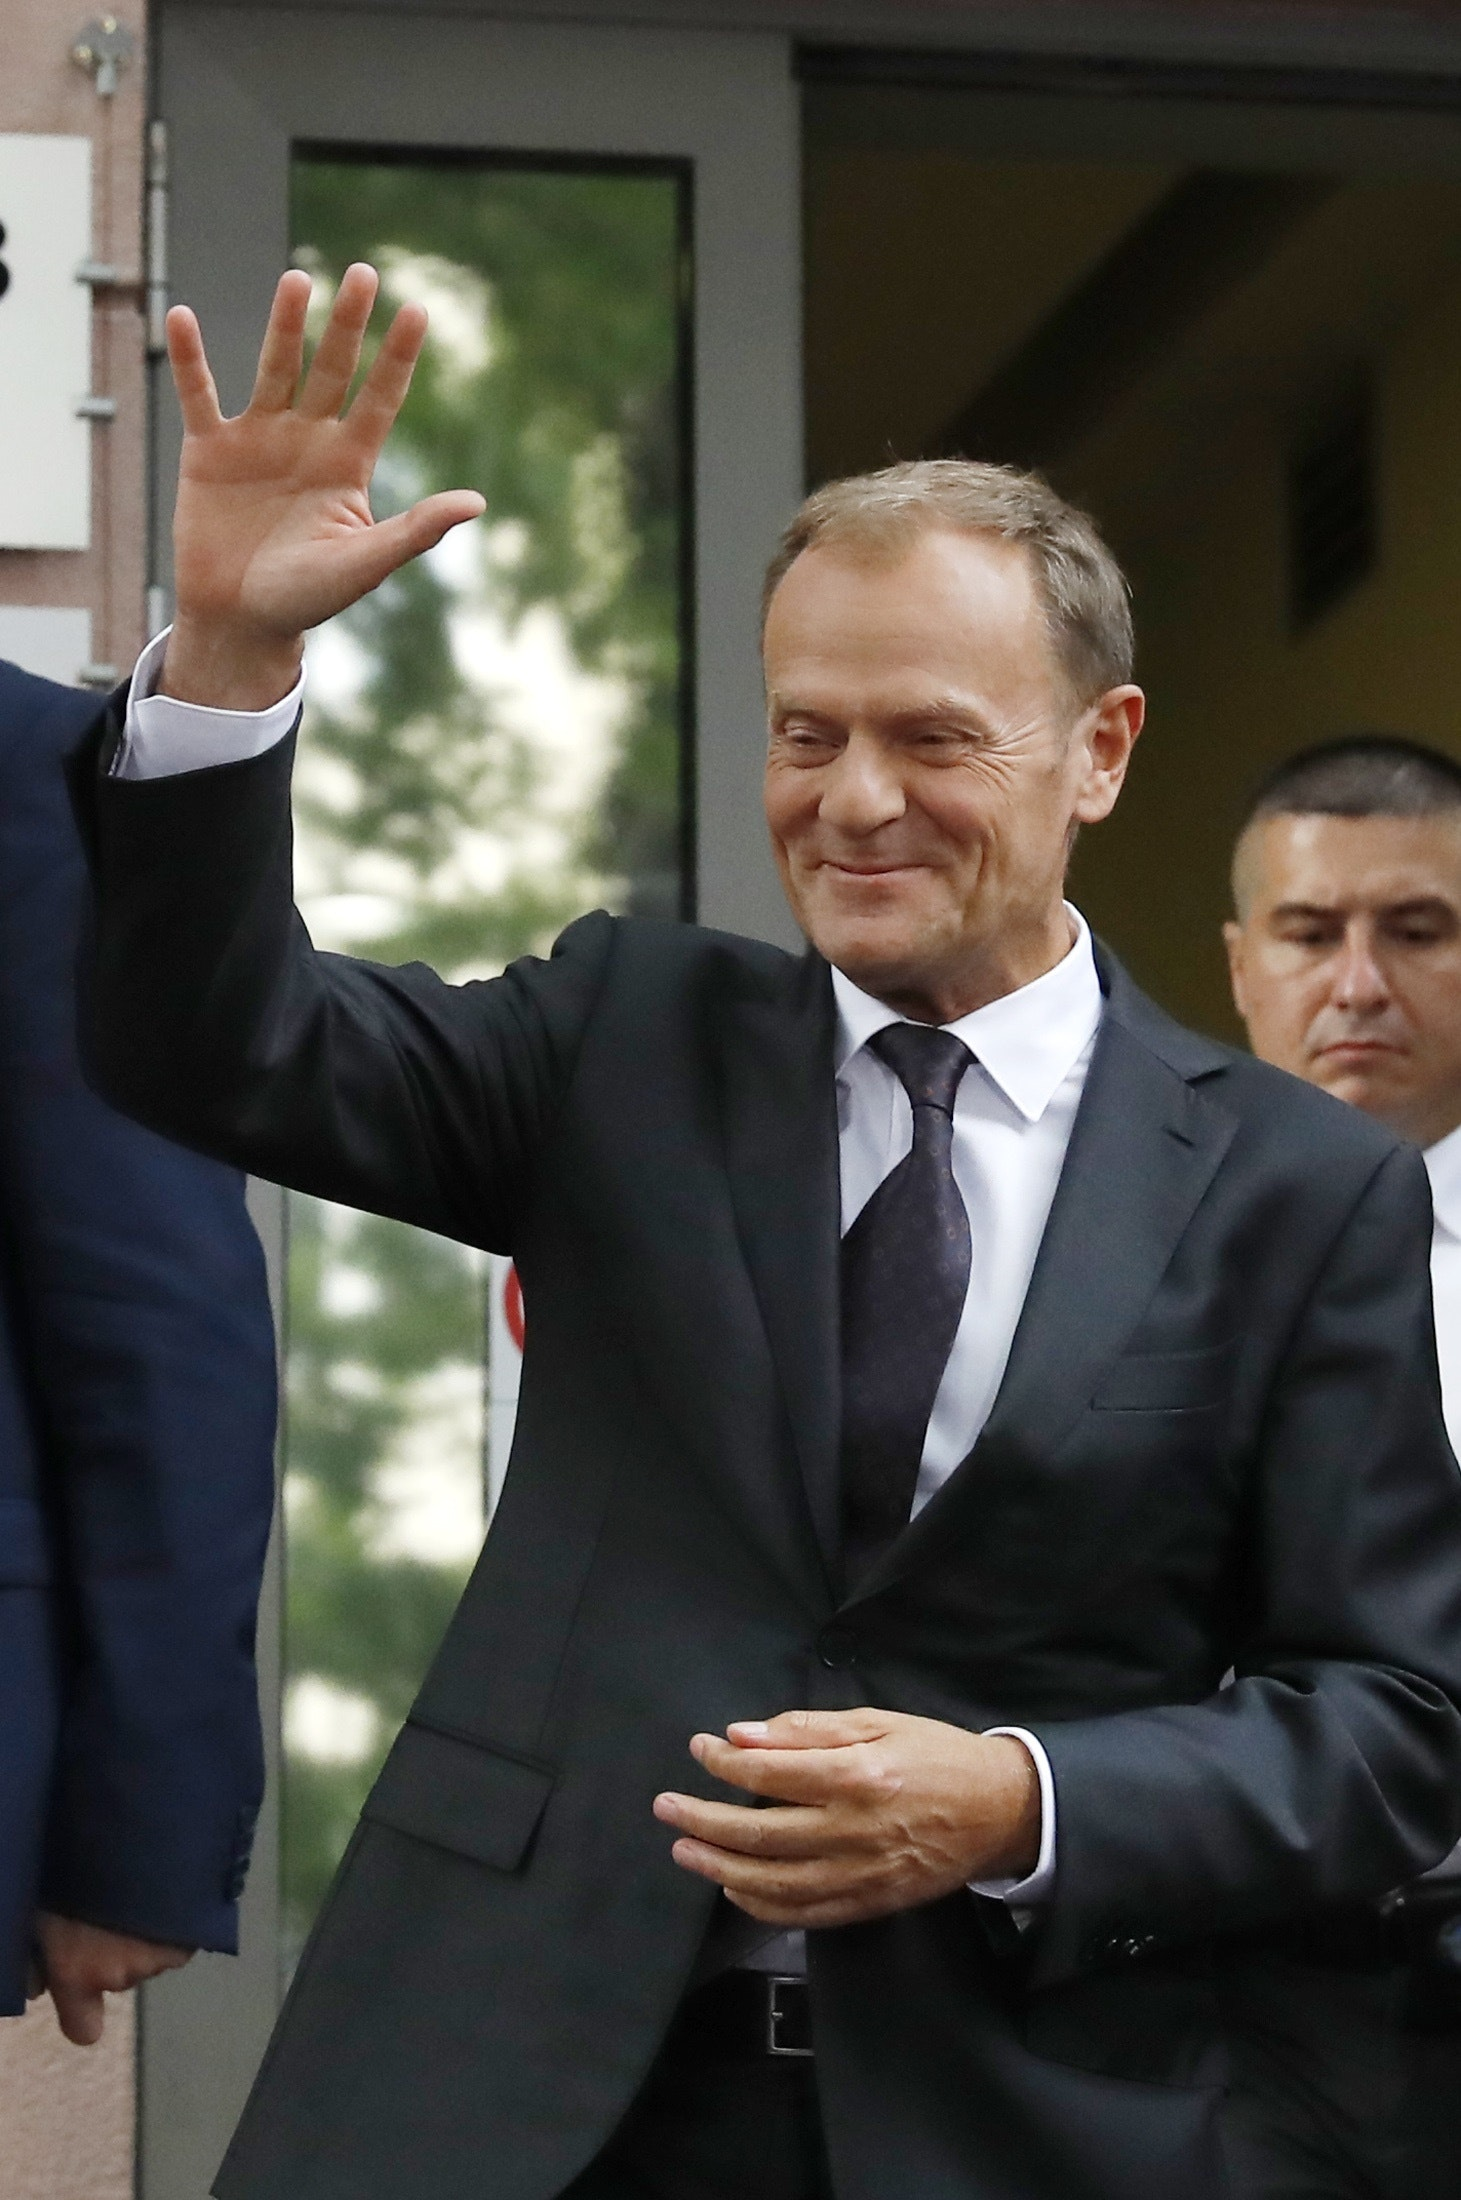 President of the European Council Donald Tusk waves as he leaves prosecutor's office in Warsaw, Poland August 3, 2017. REUTERS/Kacper Pempel